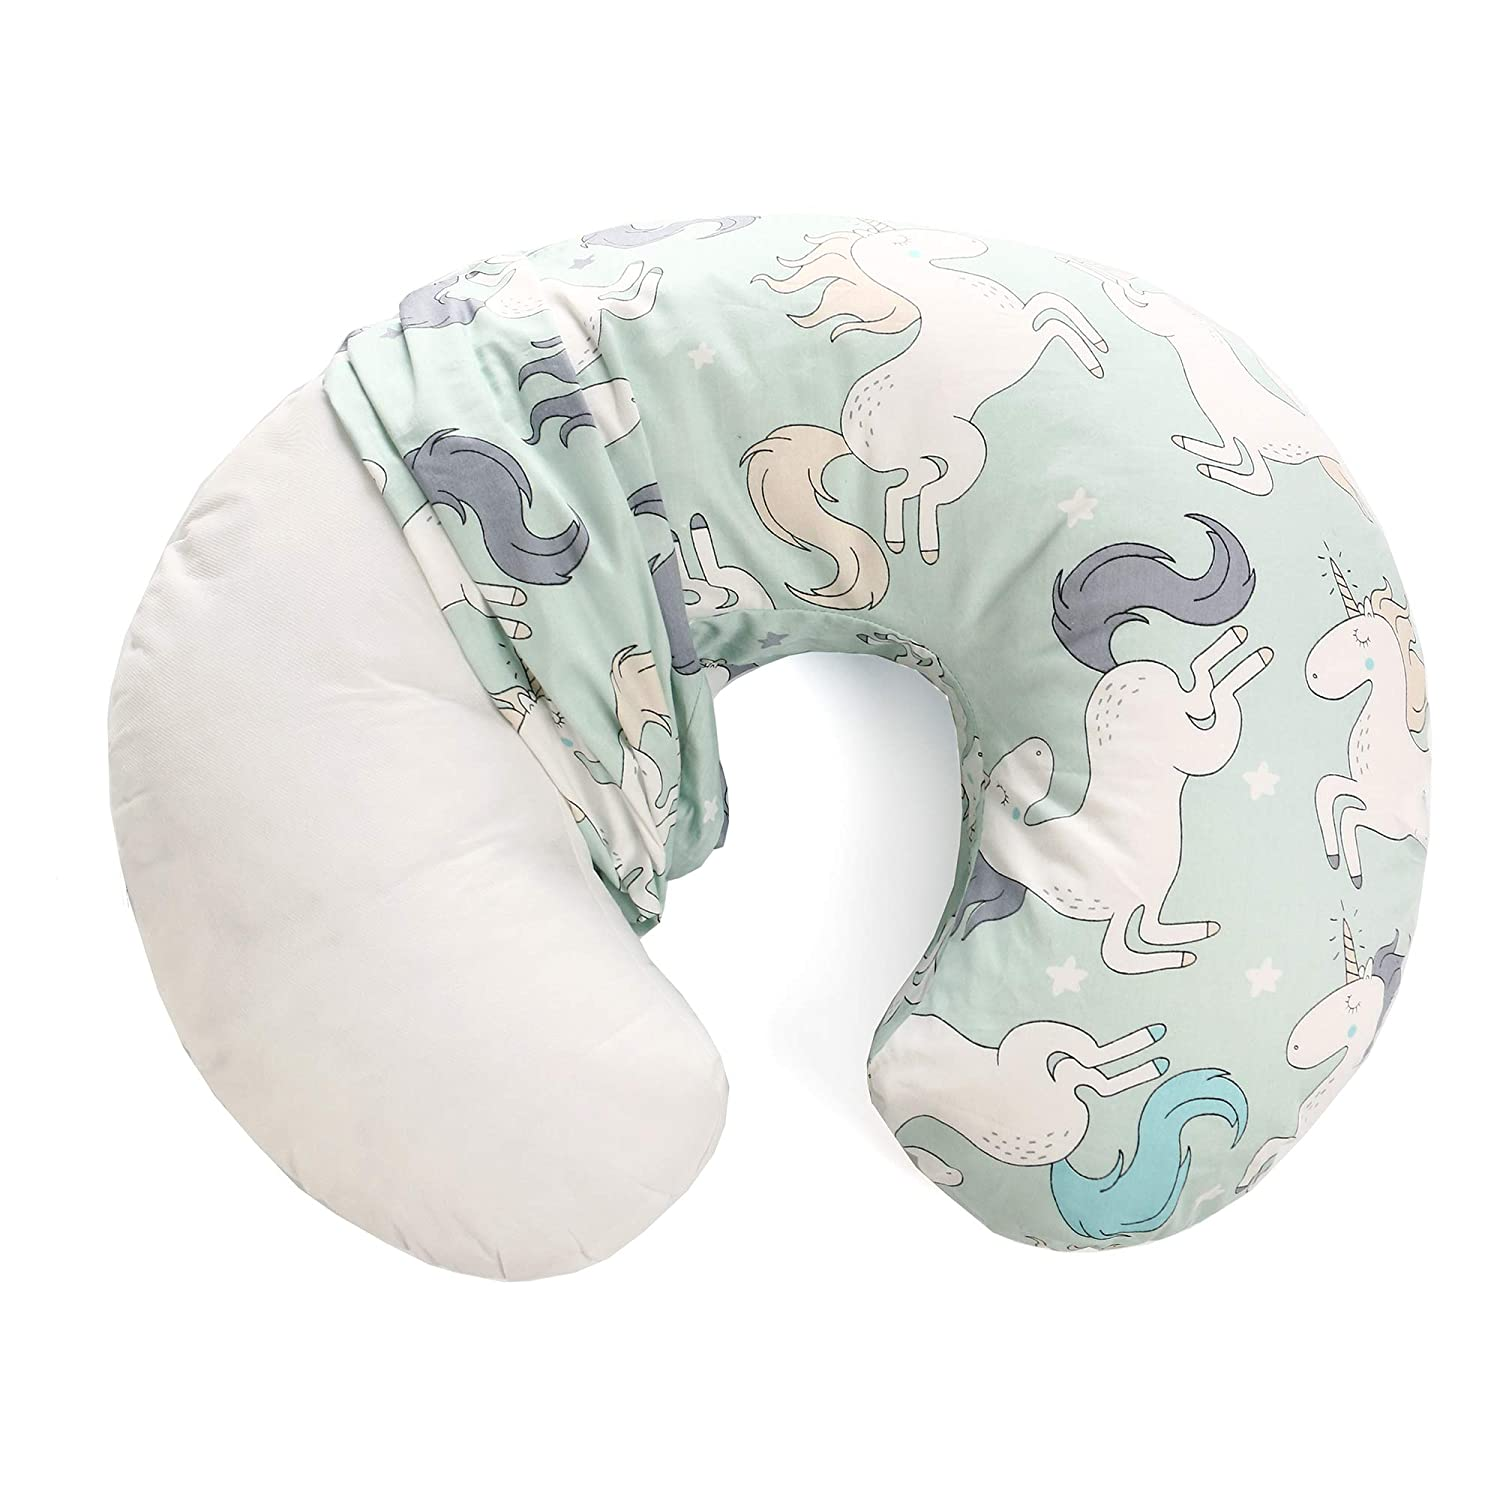 Grey Unicorn Only Designed for Miracle Baby Nursing Breastfeeding Pillows Baby Nursing Pillow Slipcover